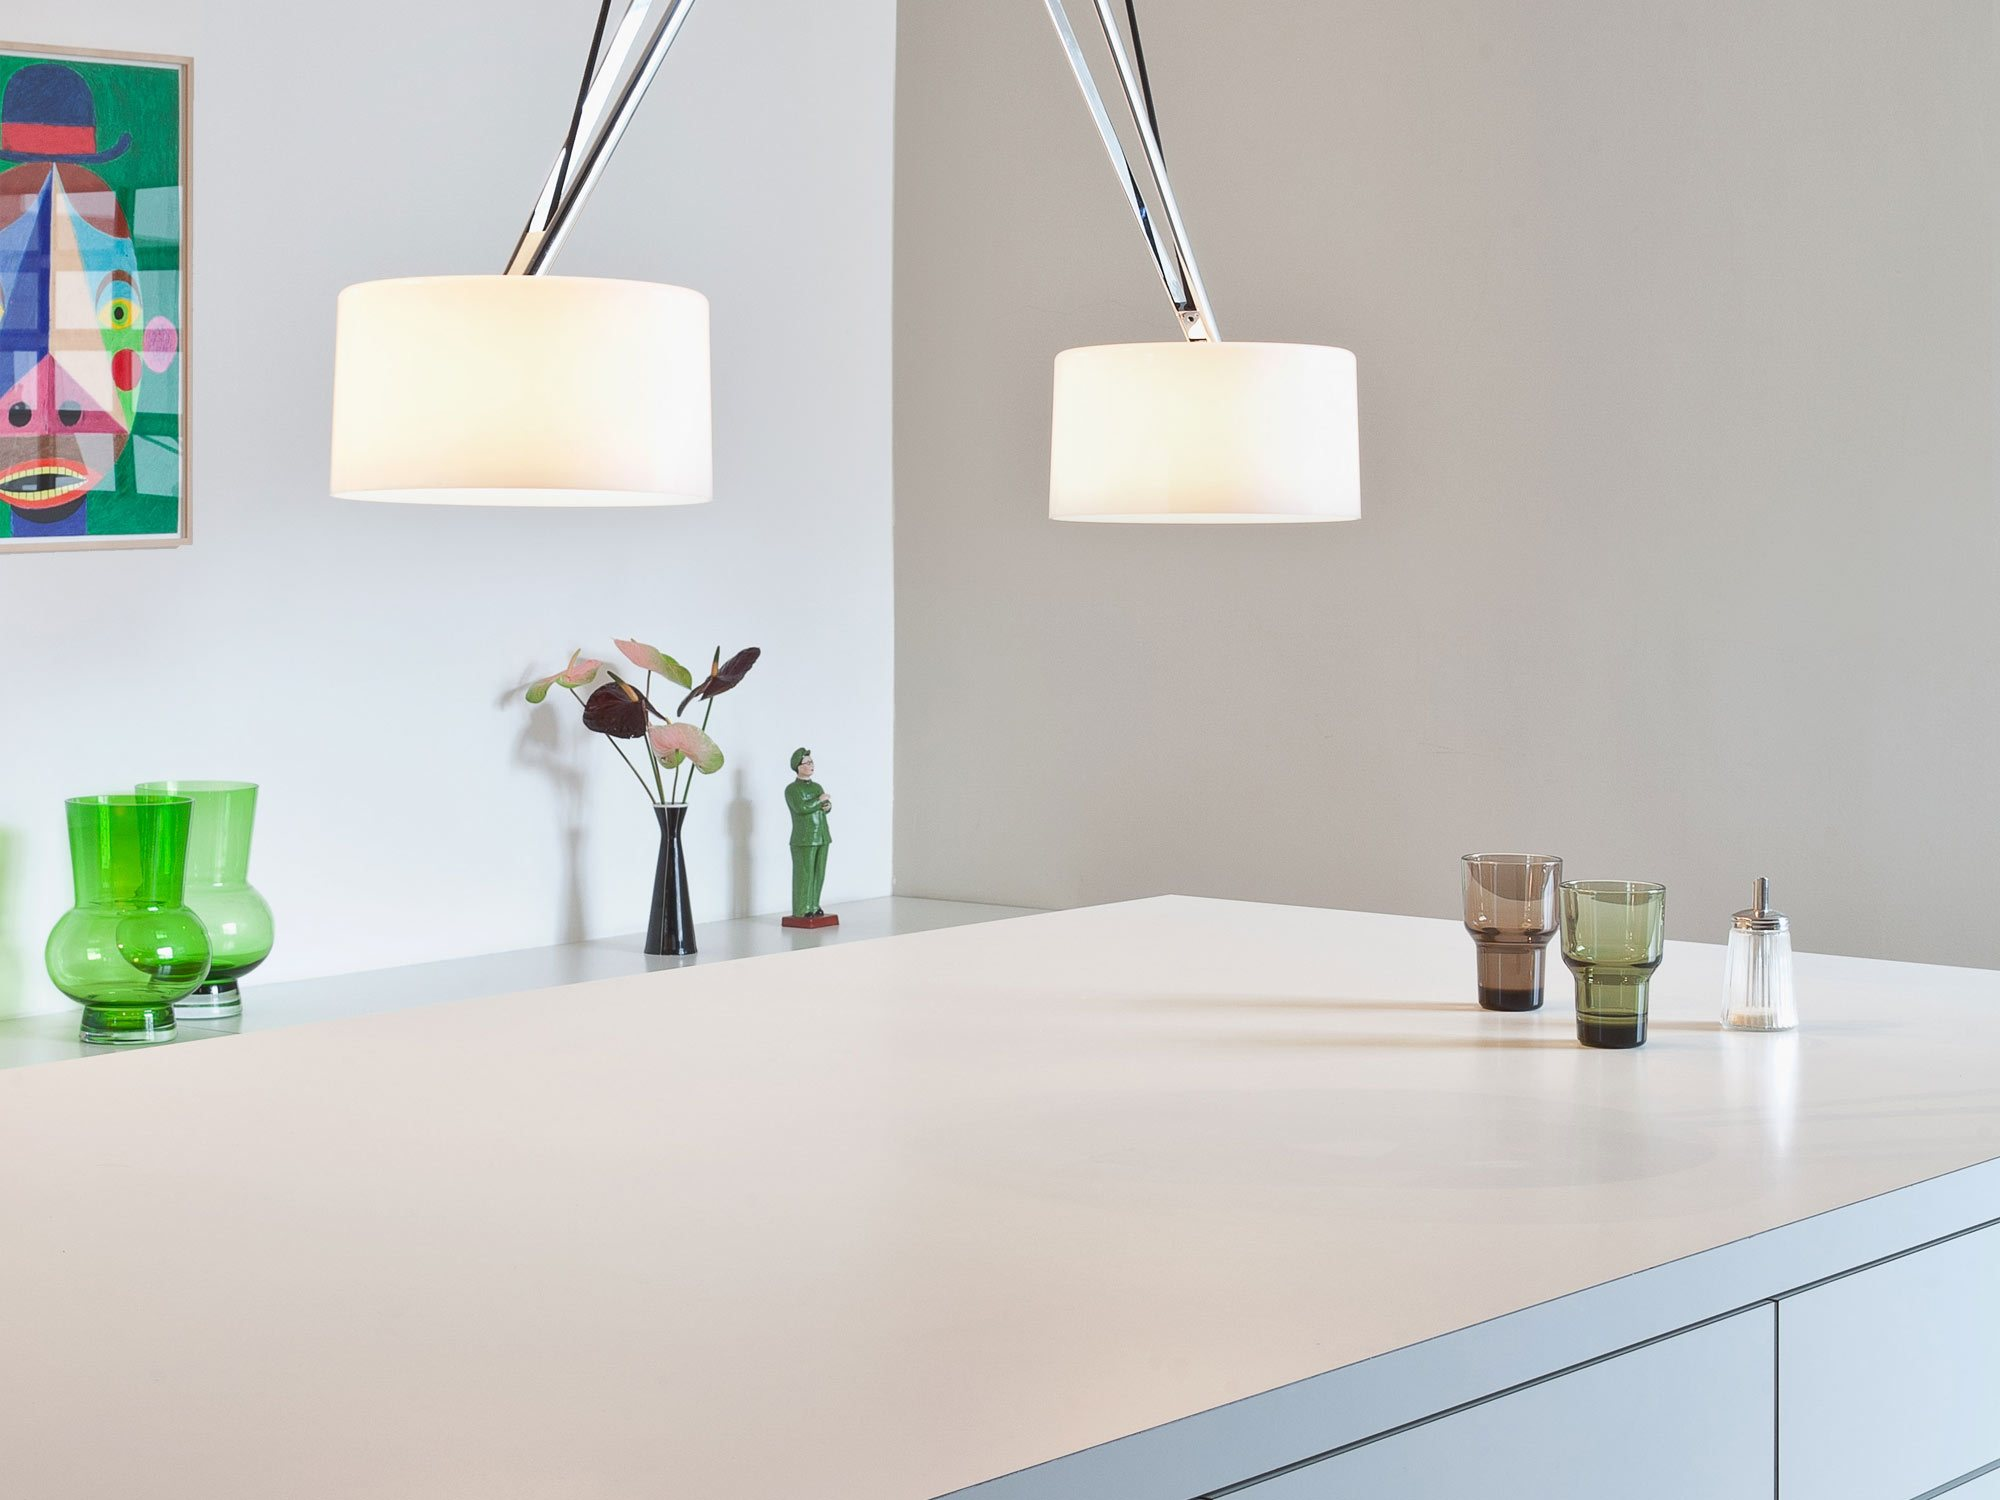 Serien Lighting Serien Lighting Design And Architectural Lighting